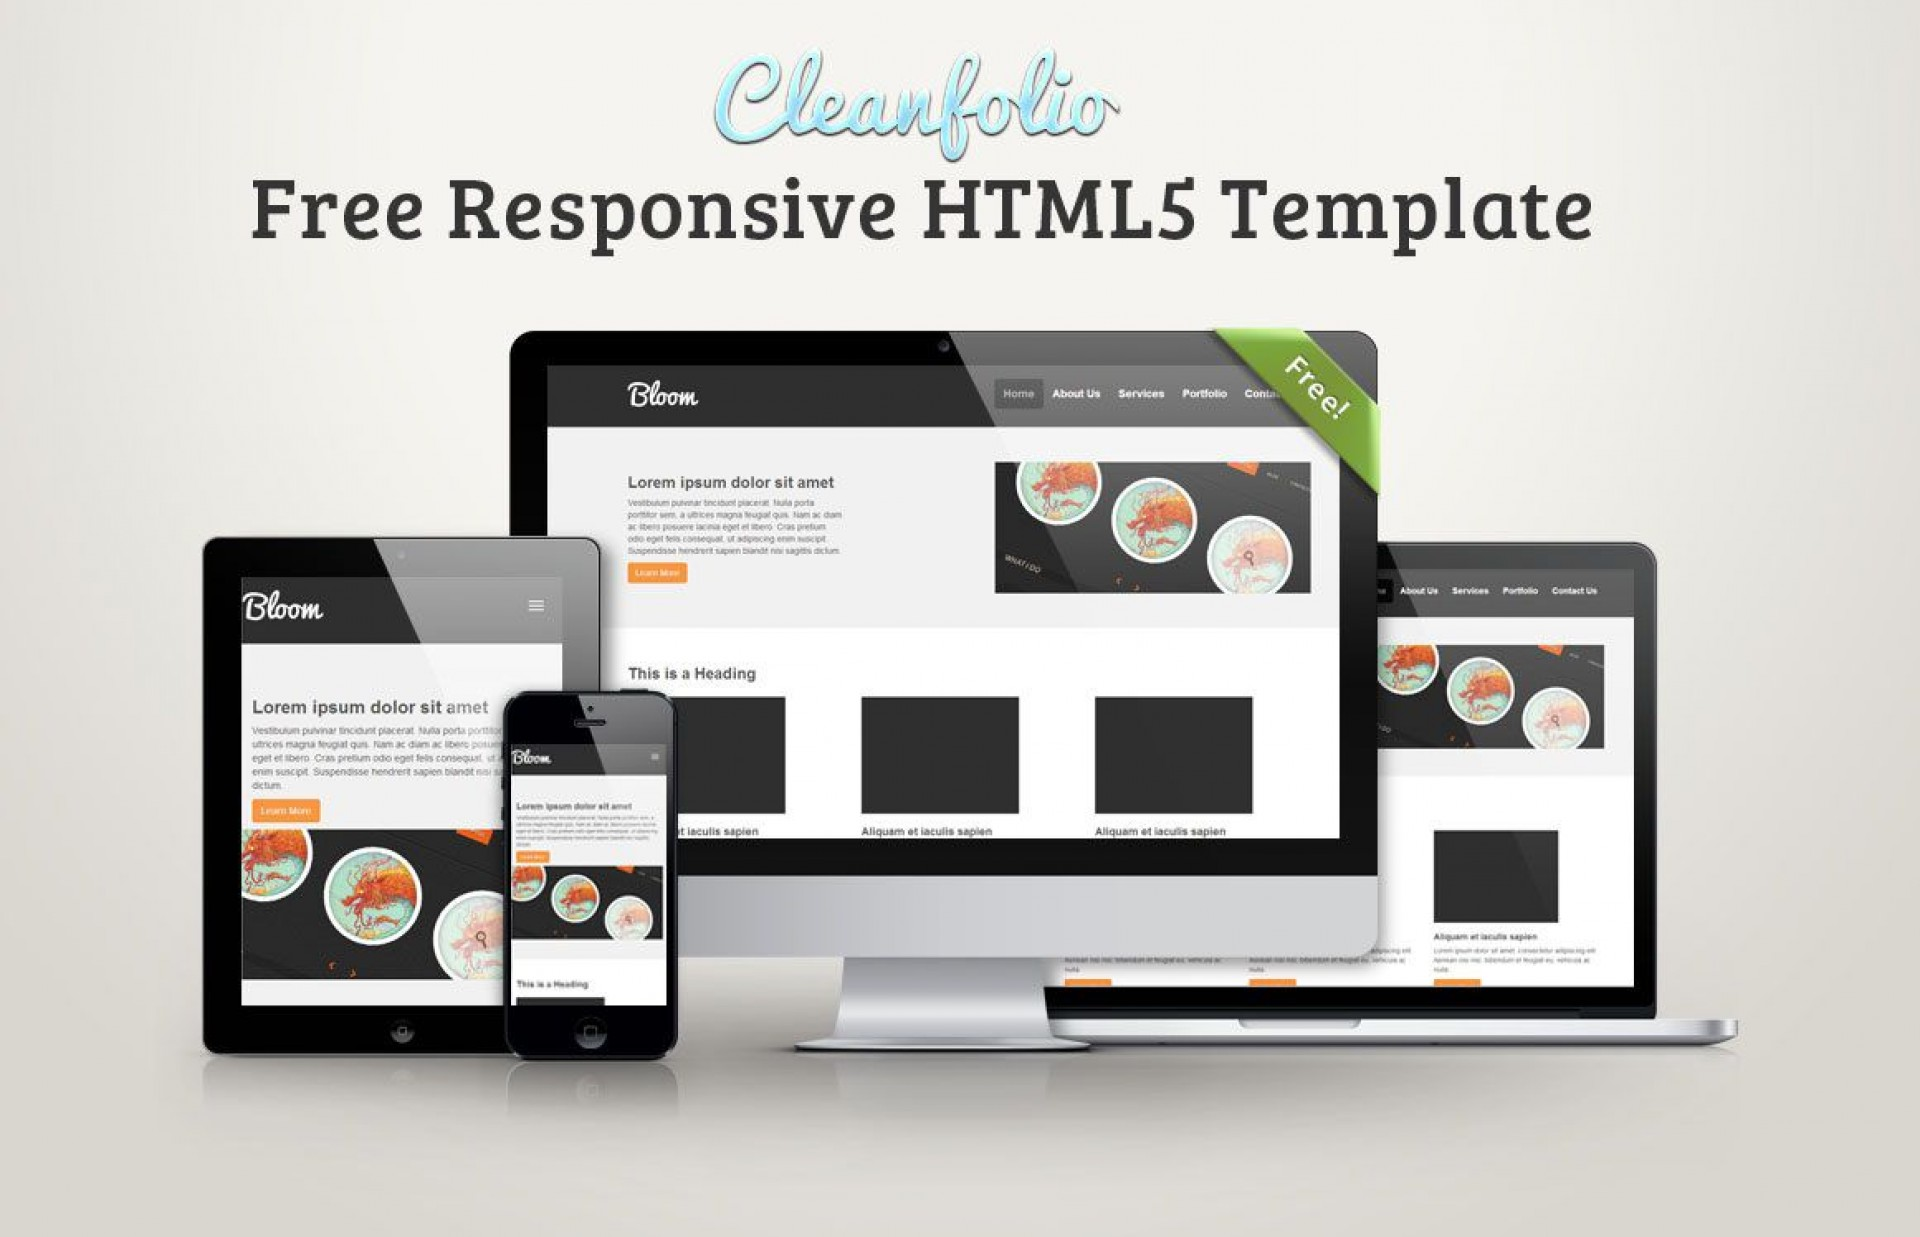 001 Excellent Free Responsive Html5 Template Sample  Best Download For School Medical1920